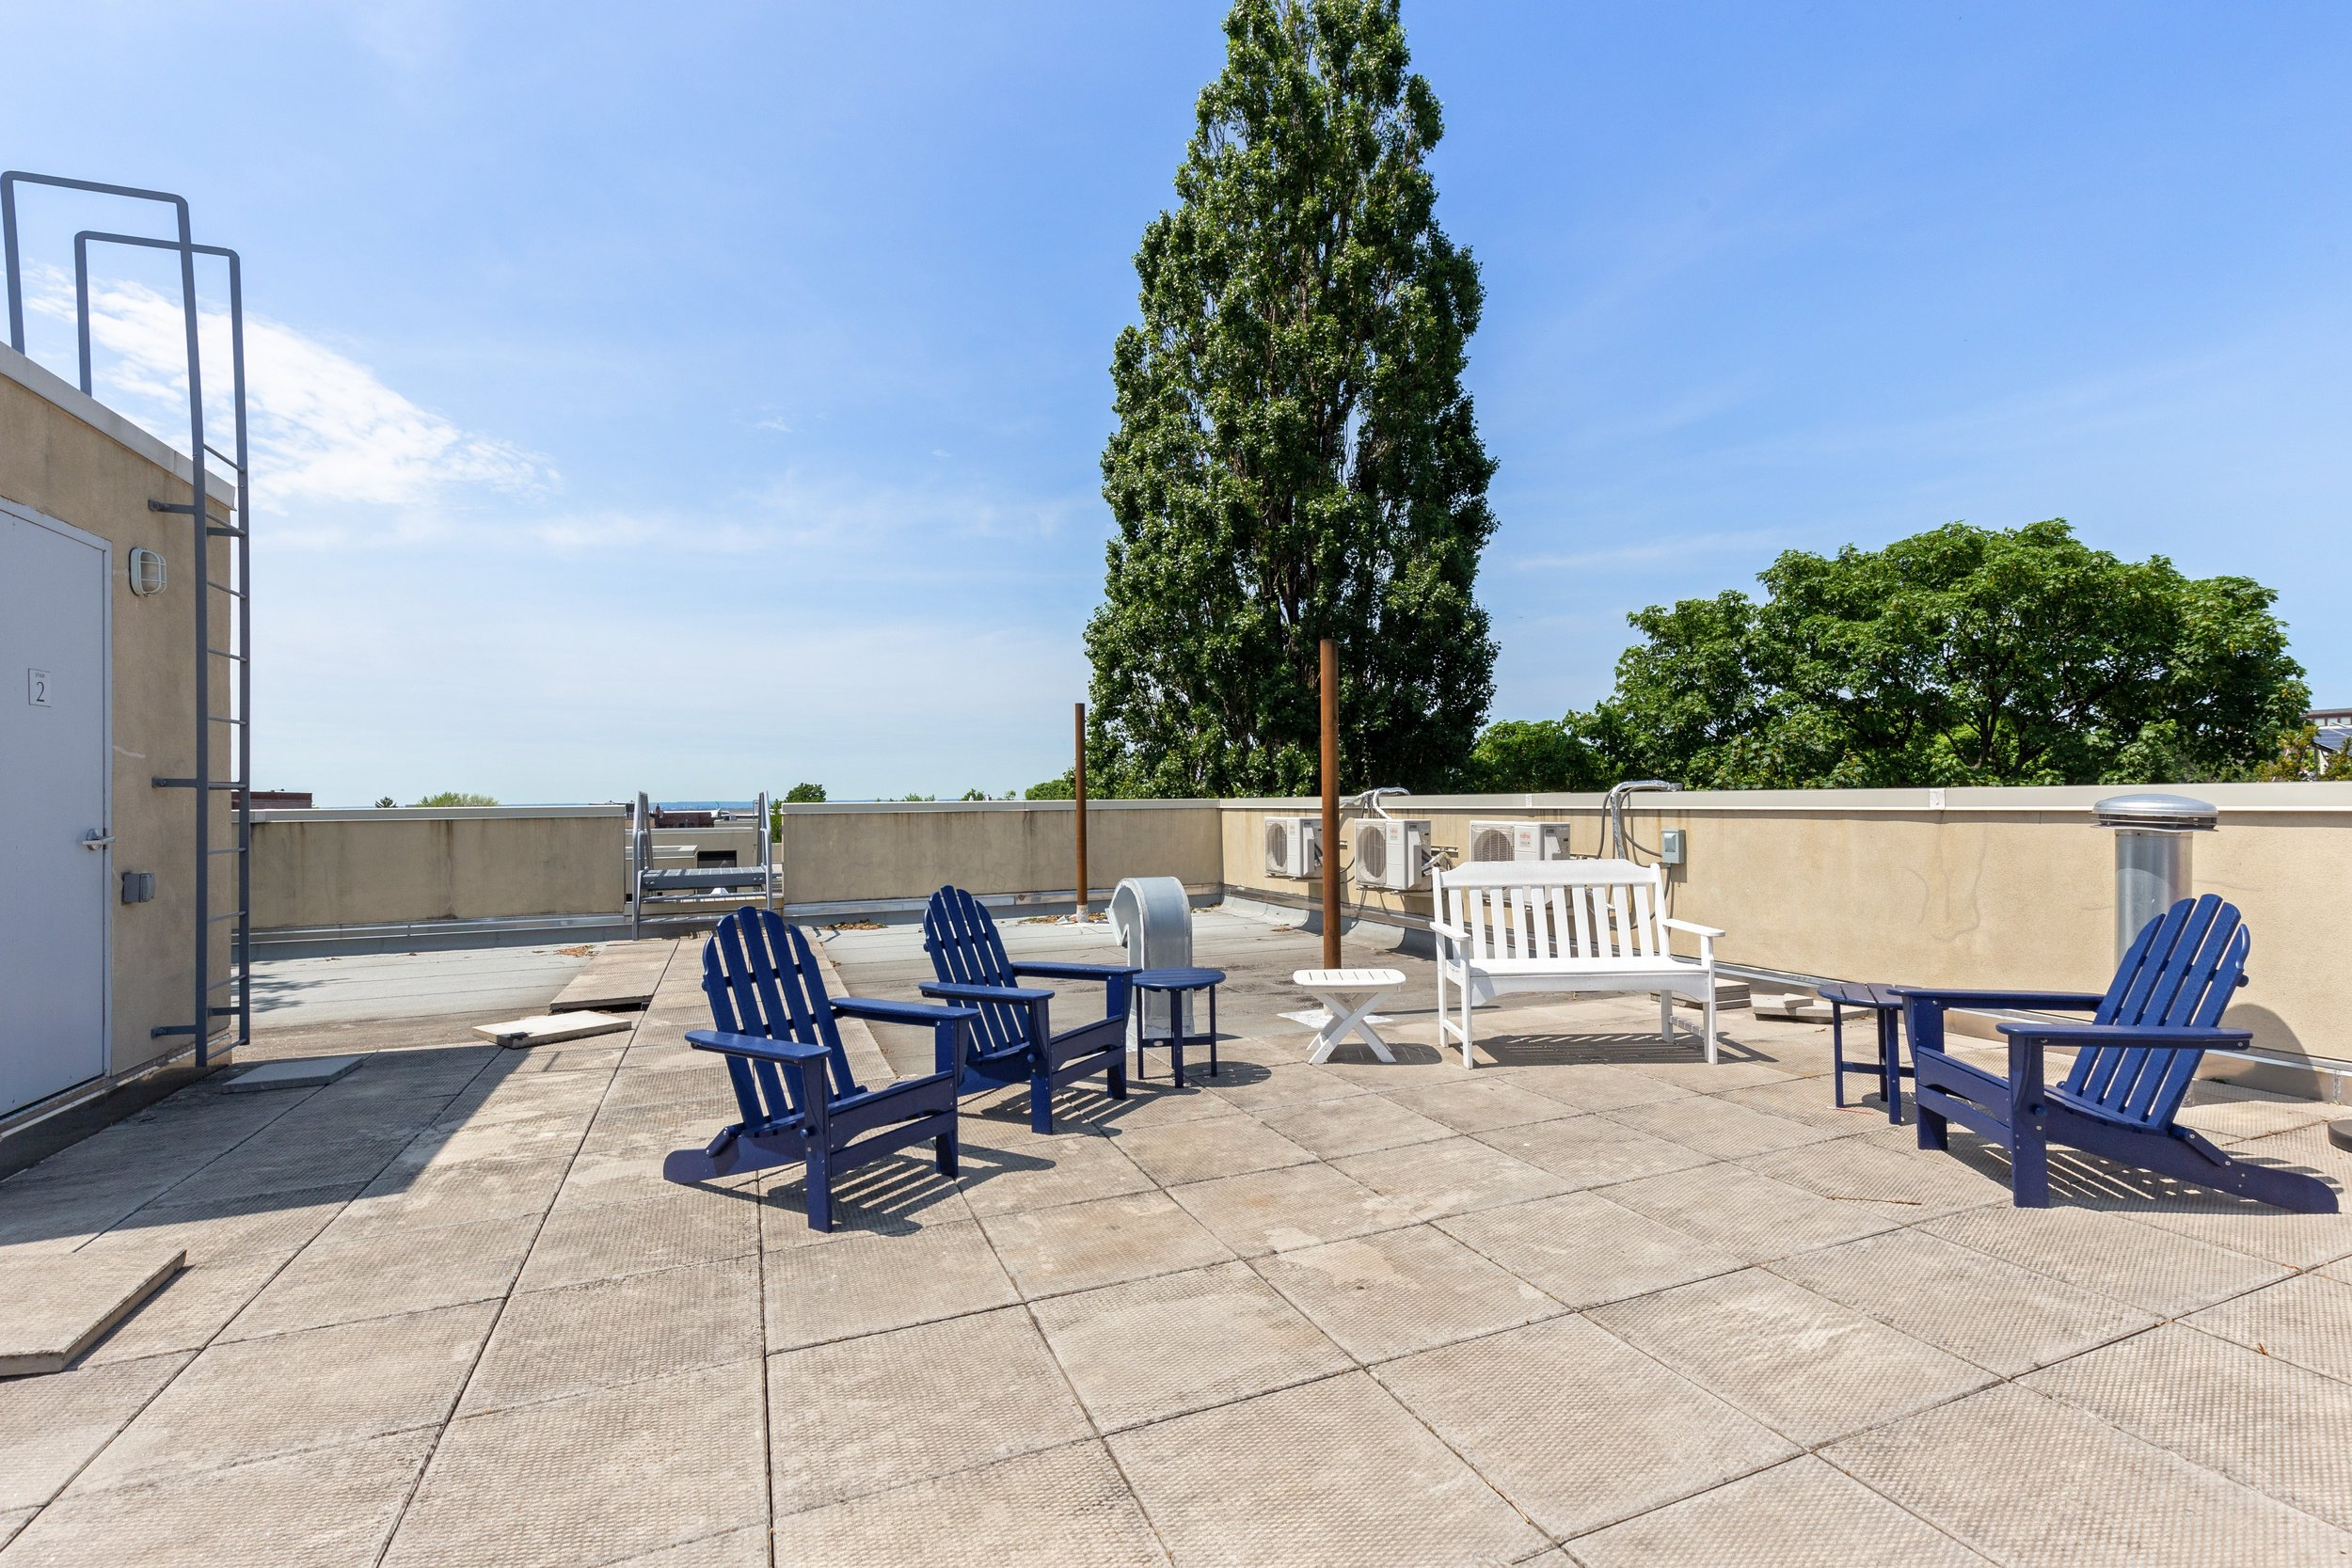 14_16388thAvenue_1A_188_RoofDeck_HiRes.jpg